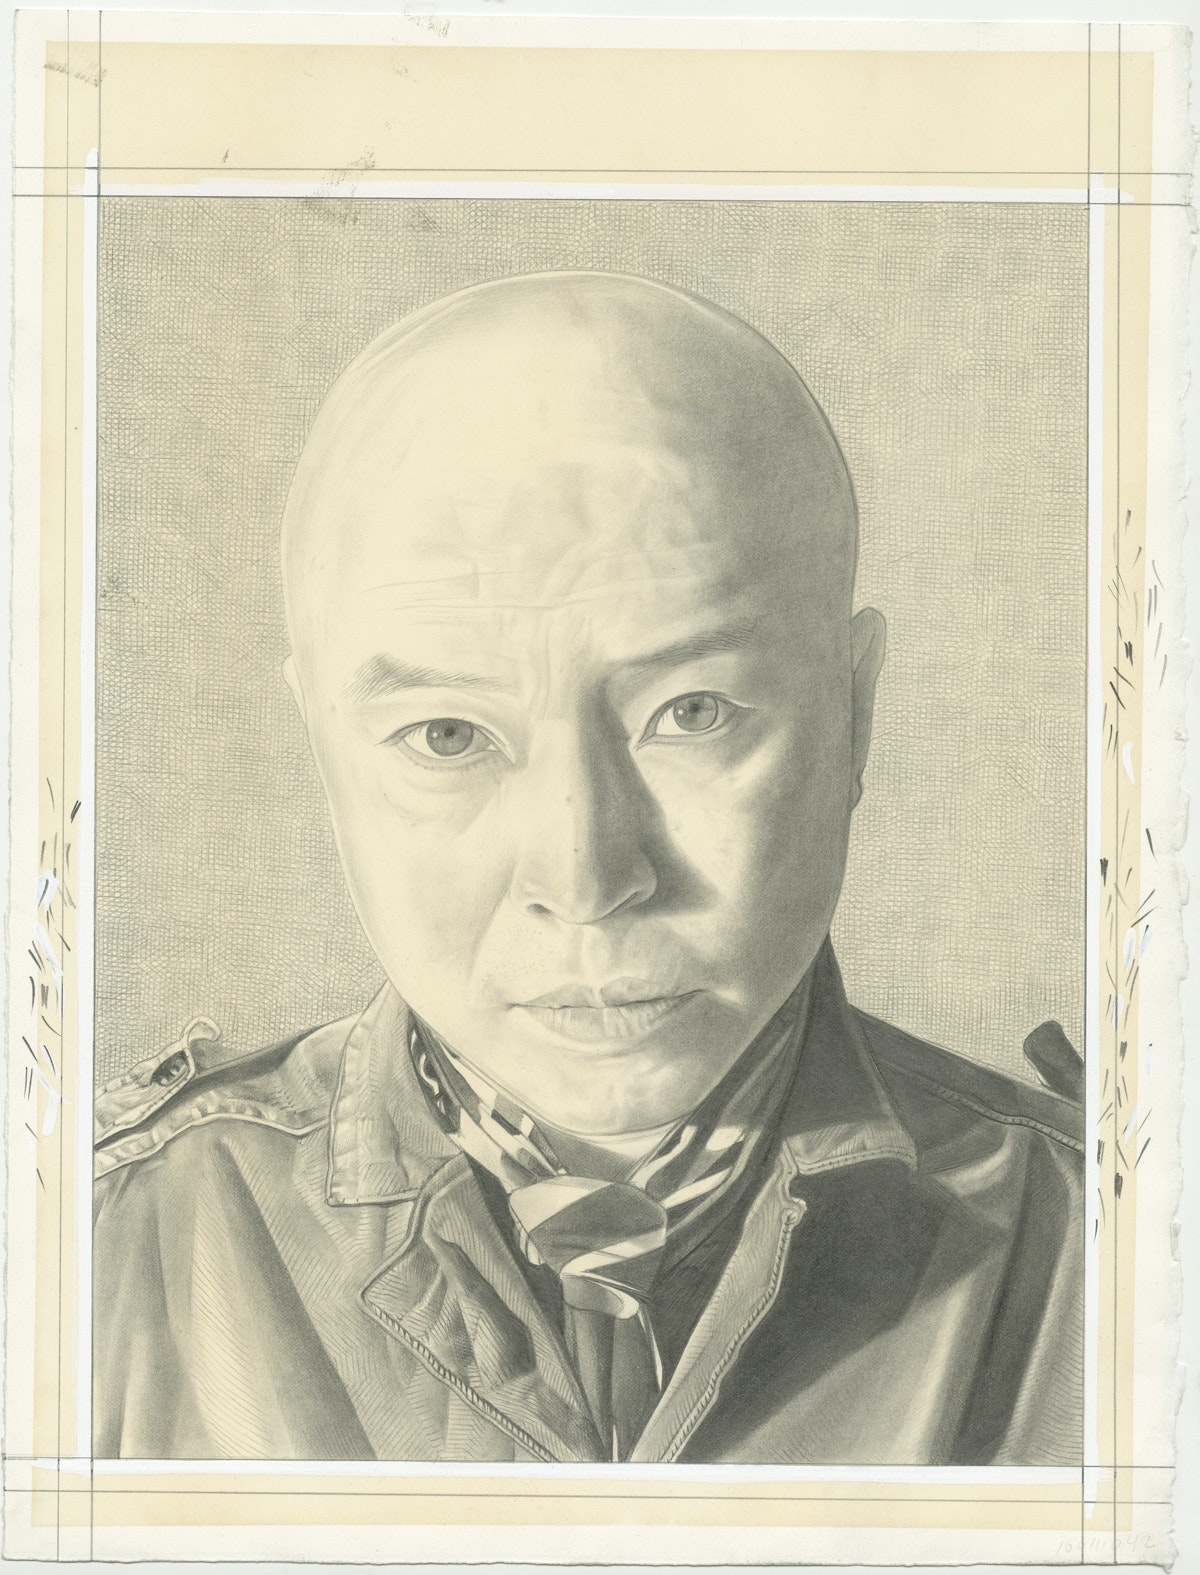 Portrait of Phong Bui. Pencil on Paper by Phong Bui.